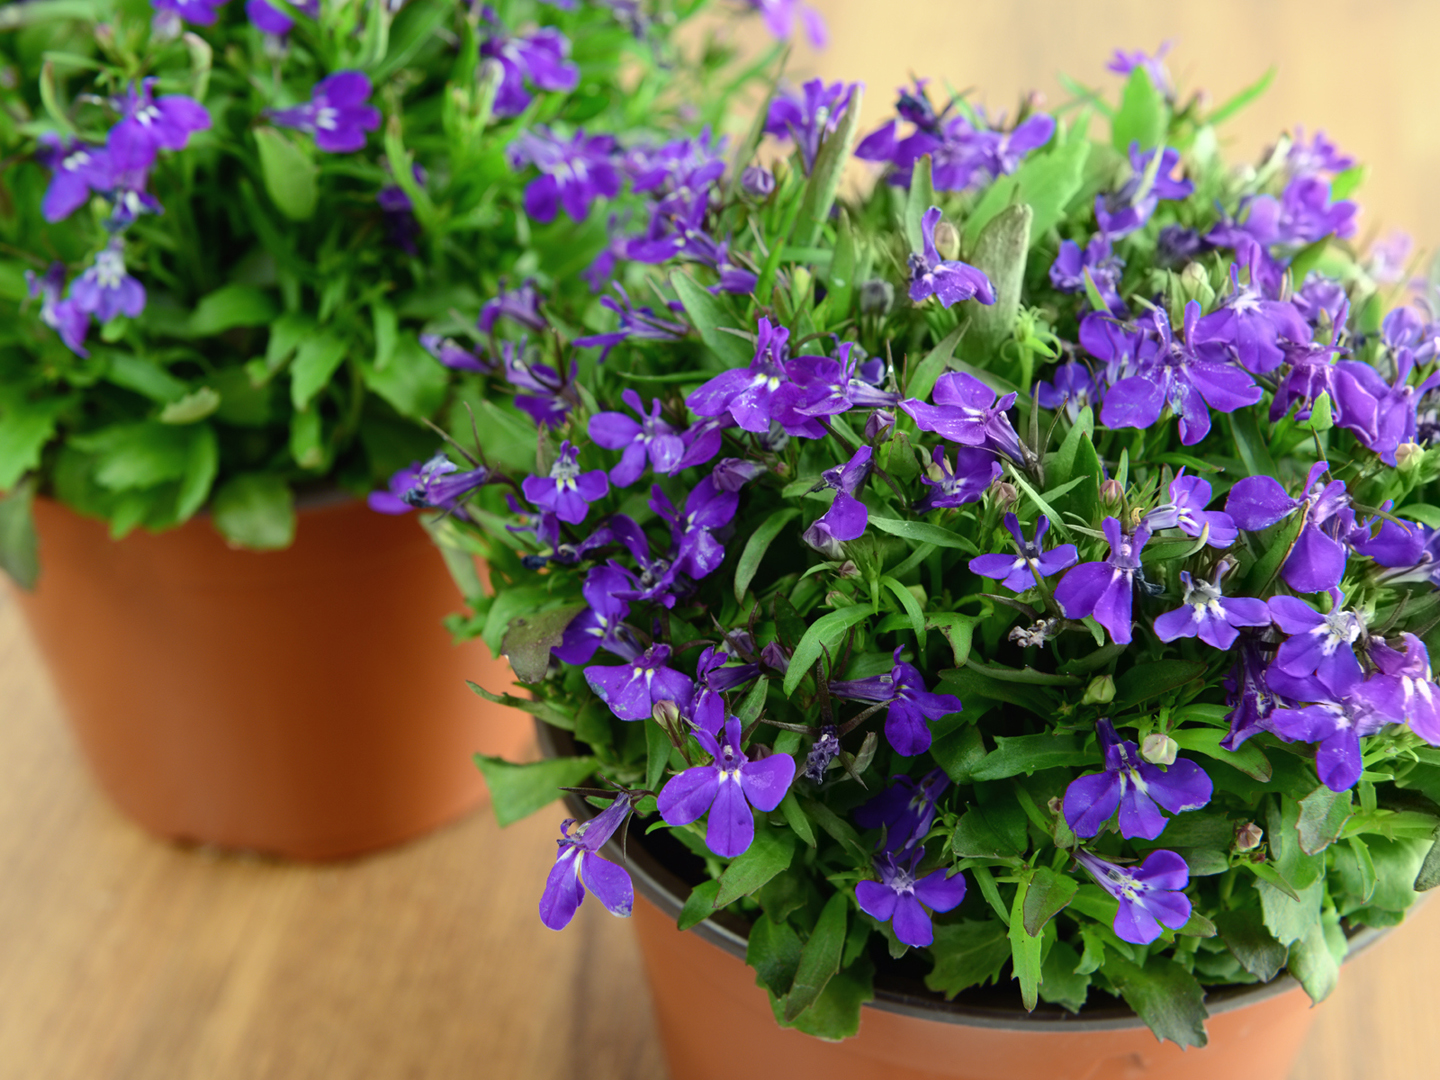 Is Lobelia Safe to Use? - Dr. Weil